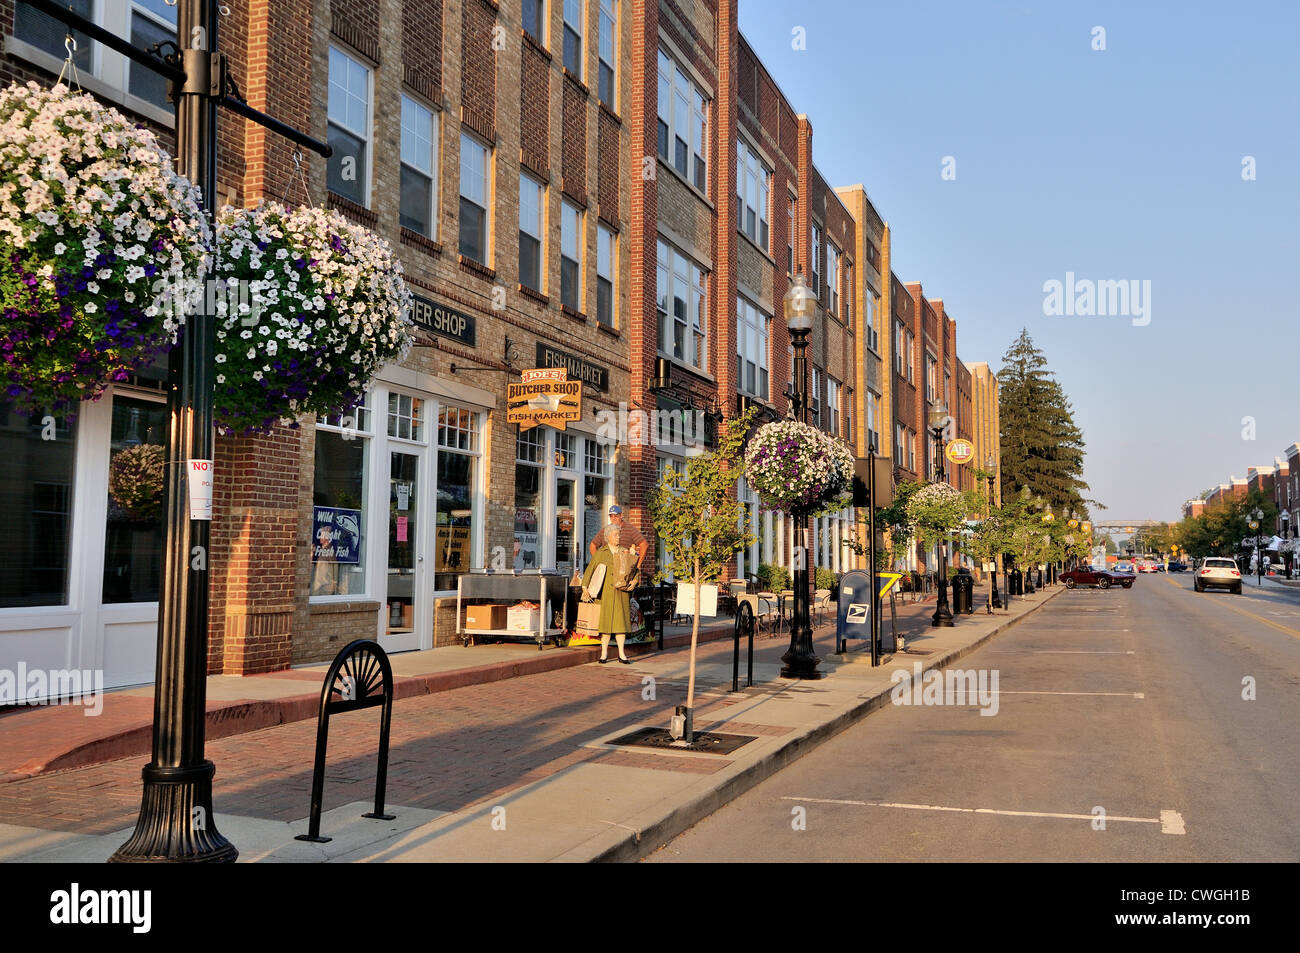 Carmel, Indiana, Arts and Design District - Stock Image